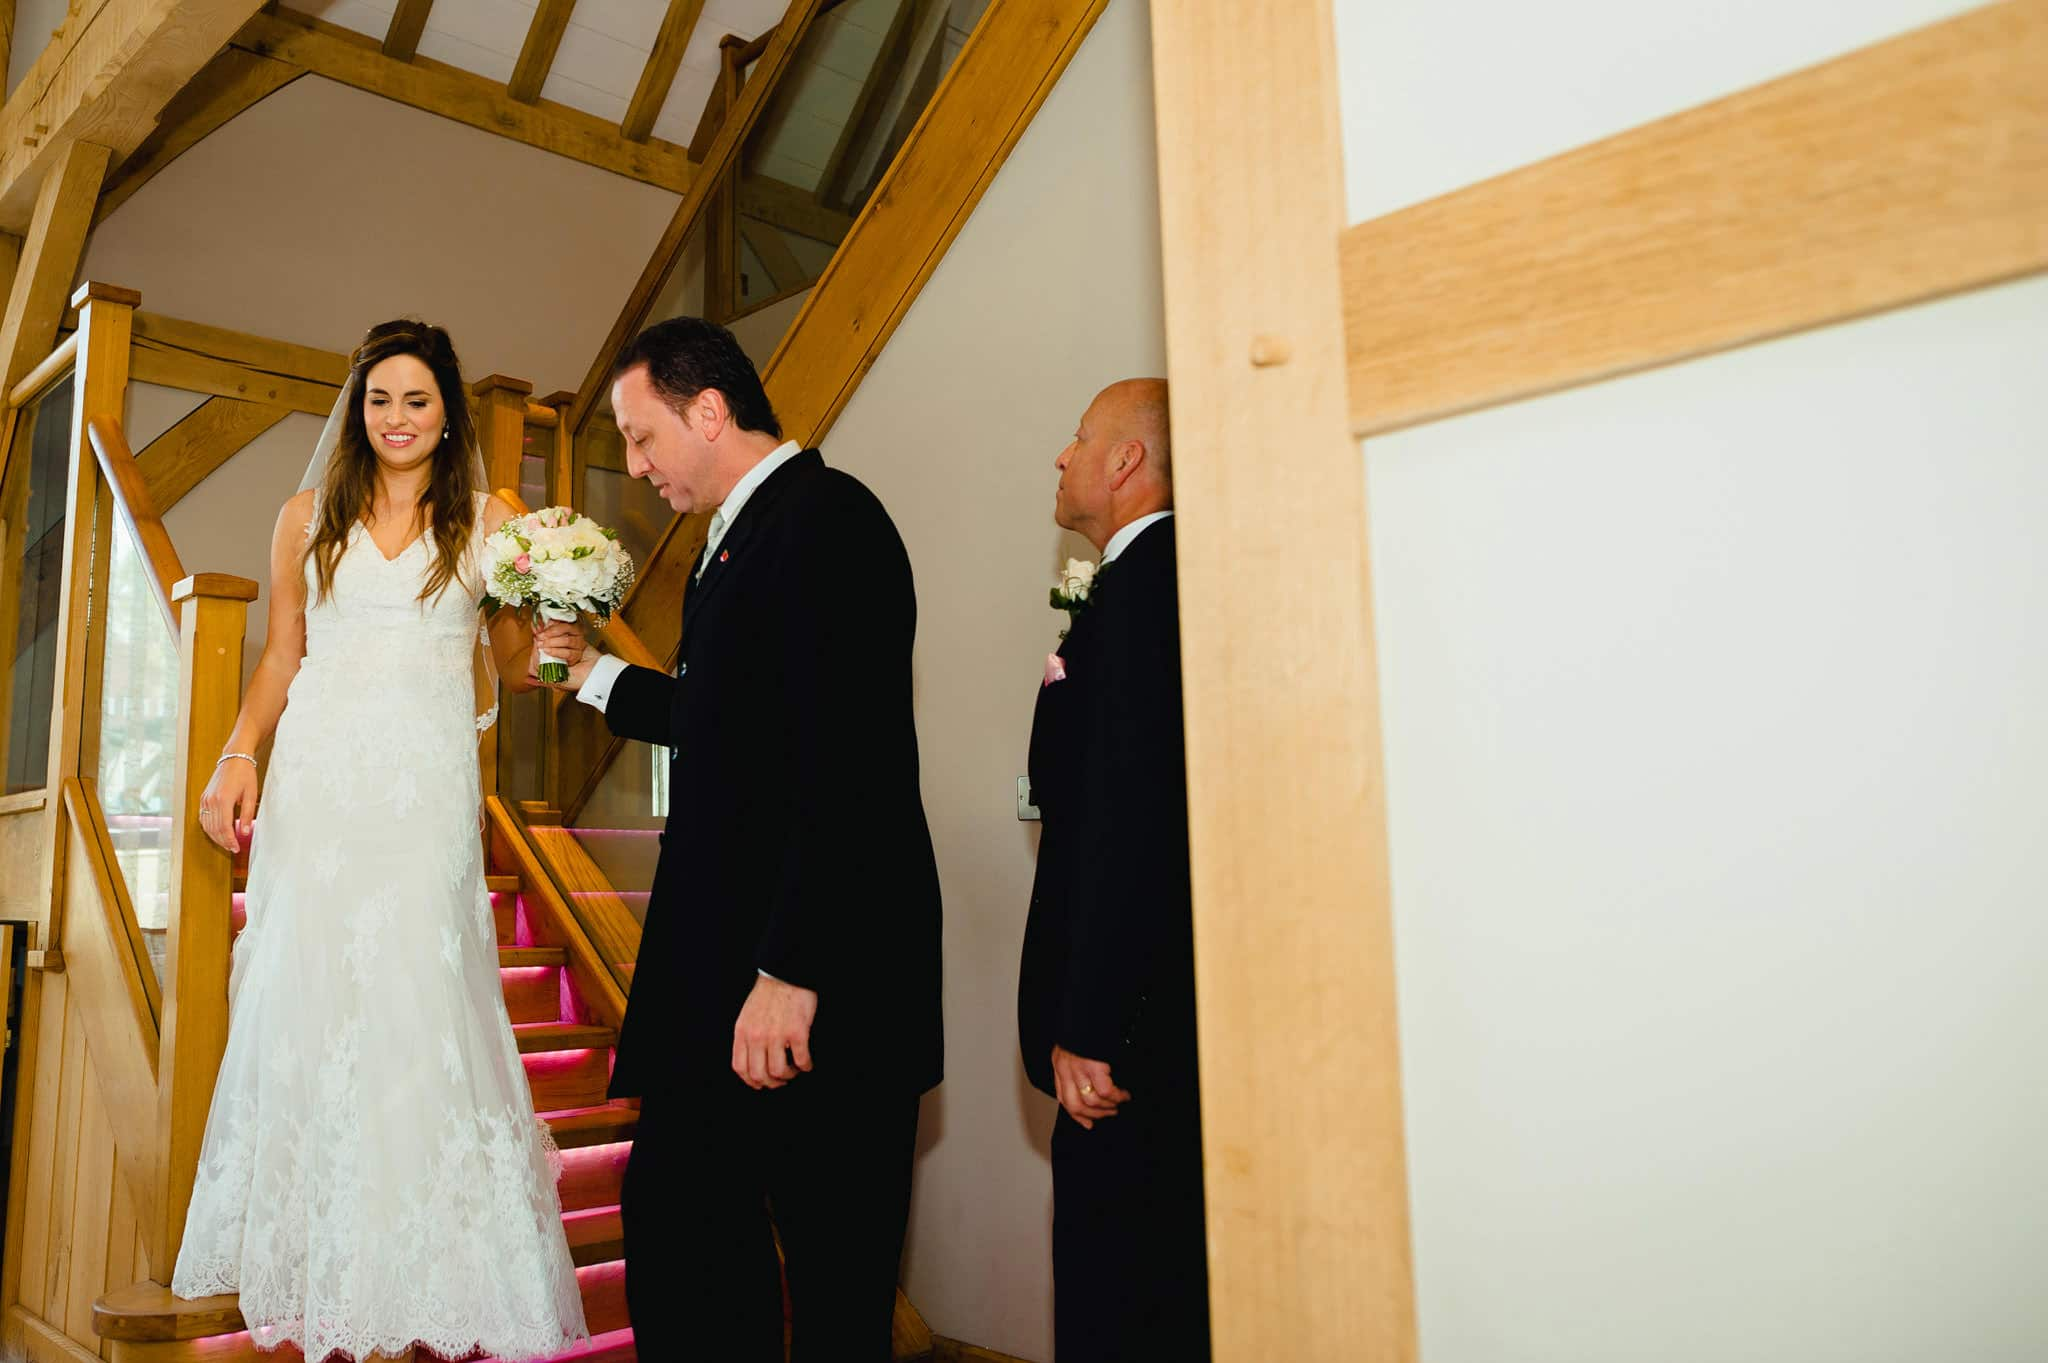 wedding at redhouse barn 63 - Wedding at Redhouse Barn in Stoke Prior, Worcestershire